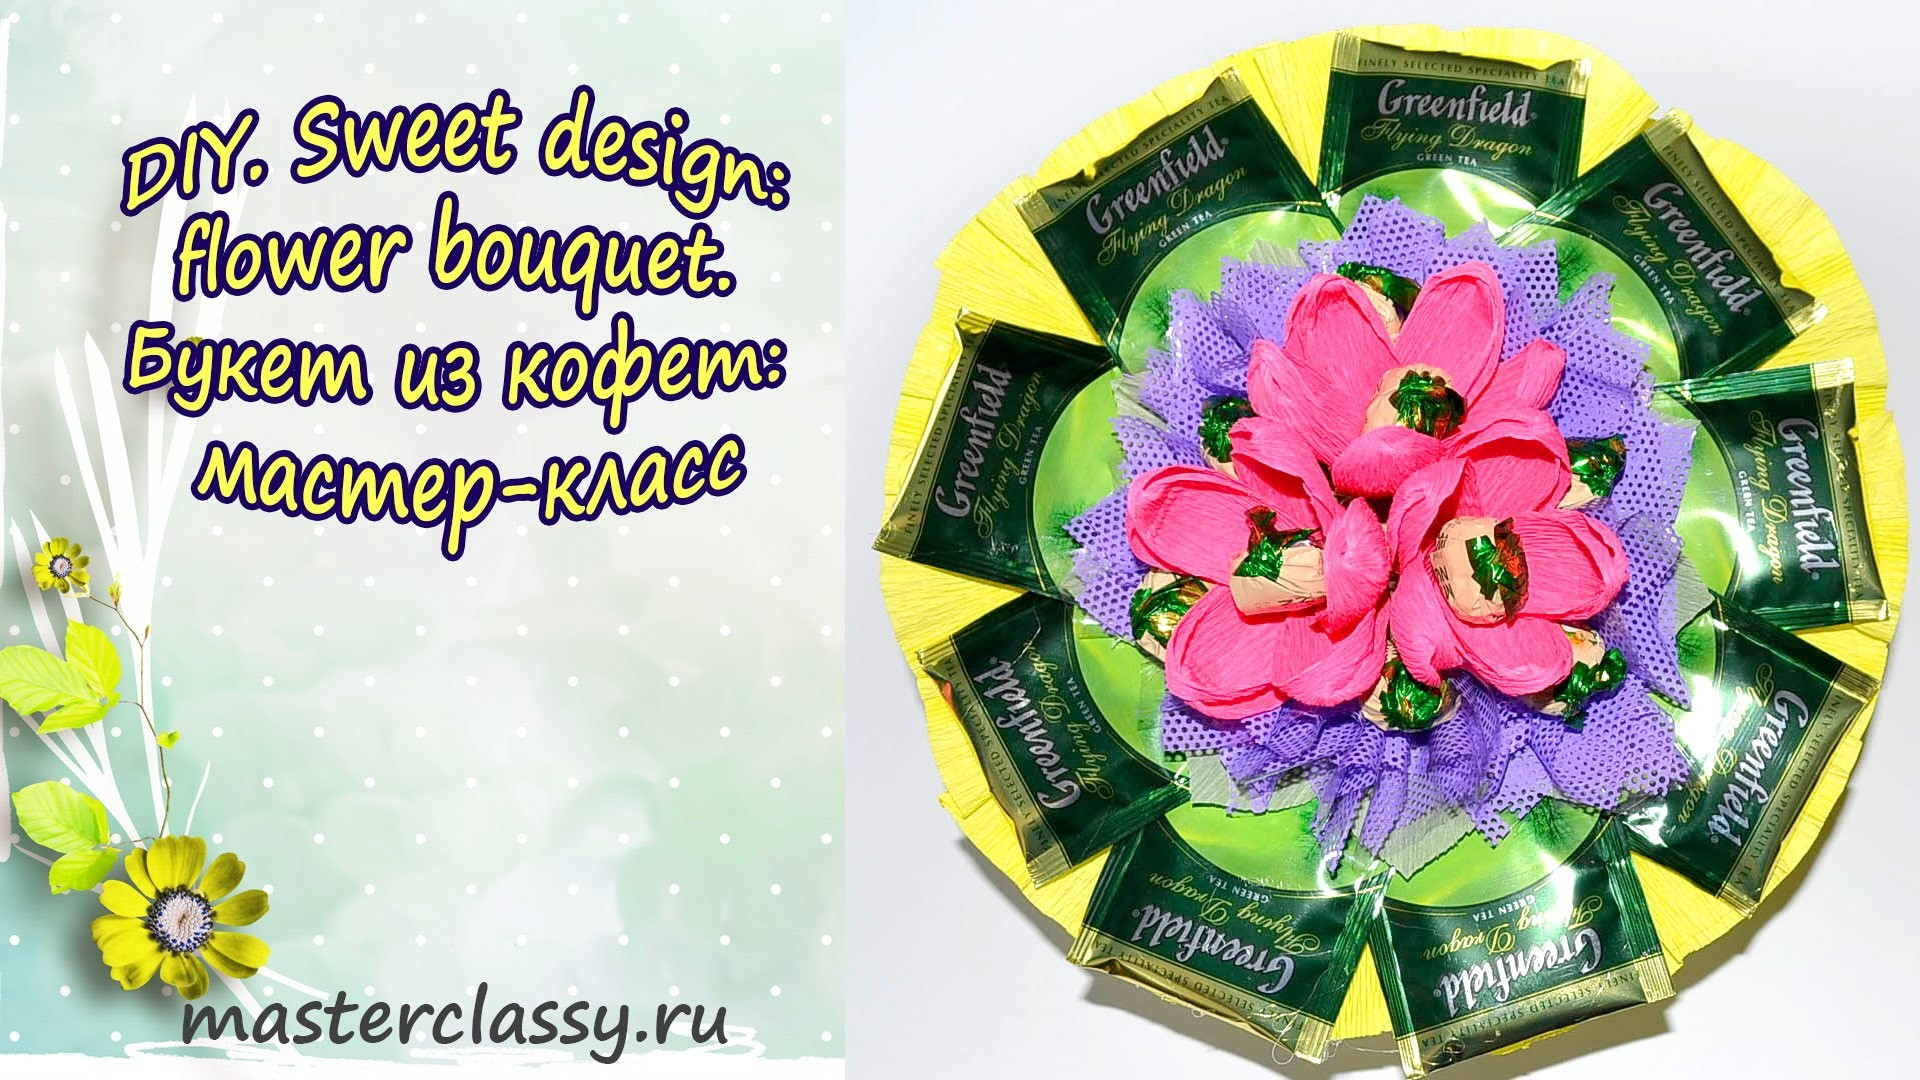 DIY. Sweet design: flower bouquet. Букет из кофет: мастер-класс